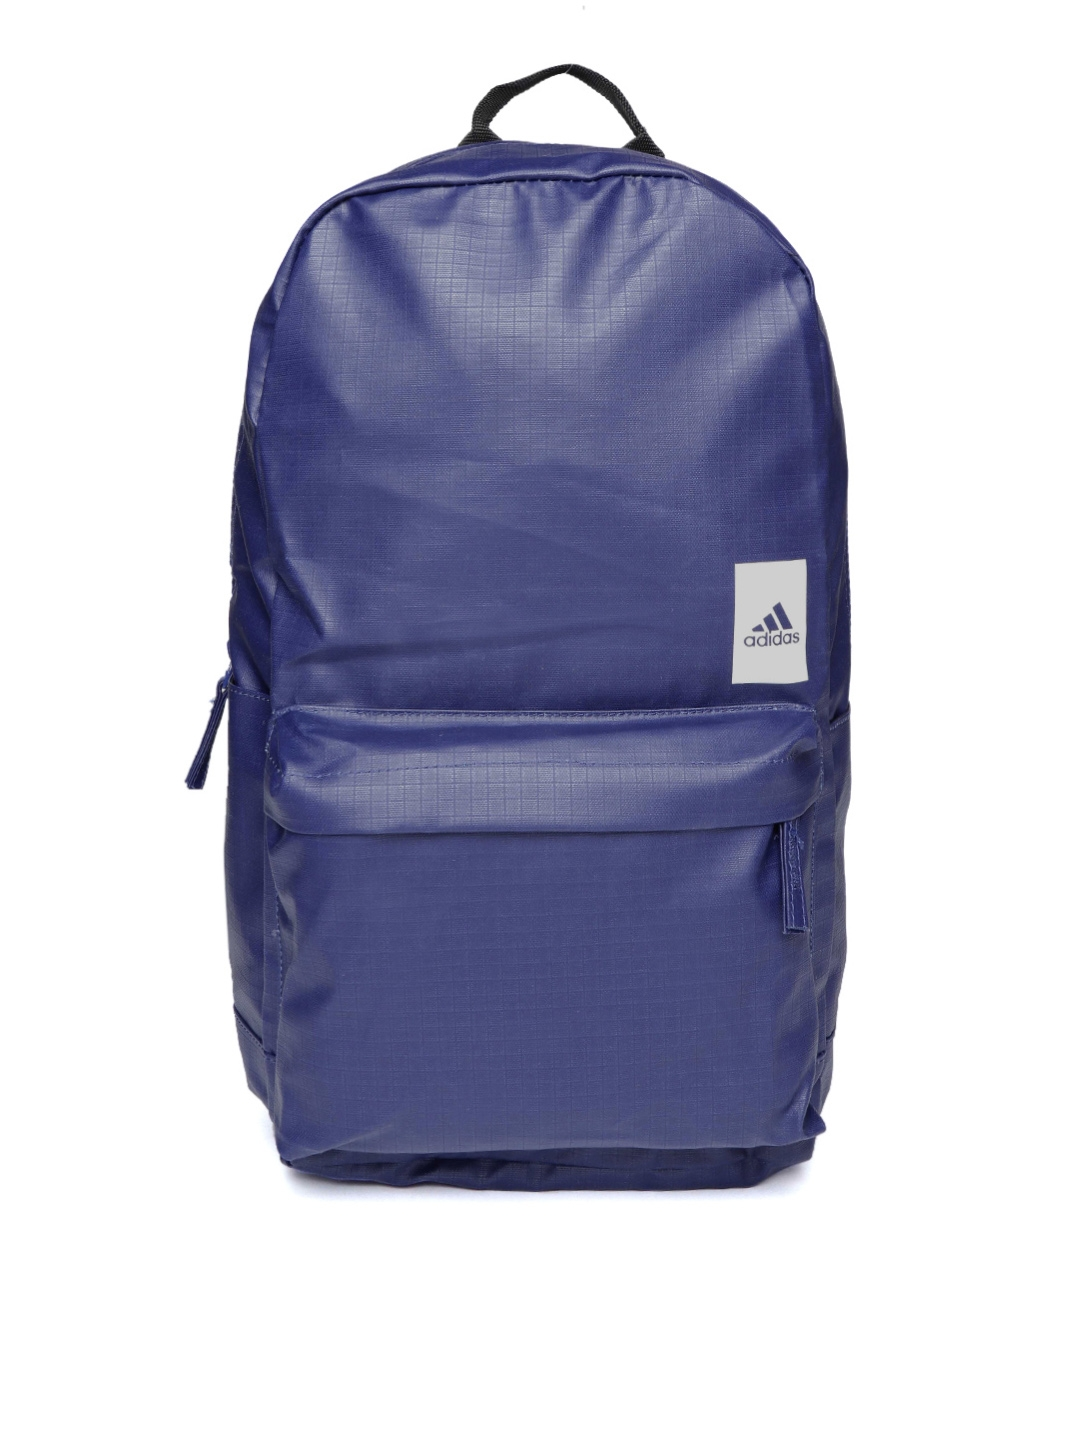 Buy ADIDAS Unisex Blue BR1550 Solid Backpack - Backpacks for Unisex ... 7ee6a527b867b